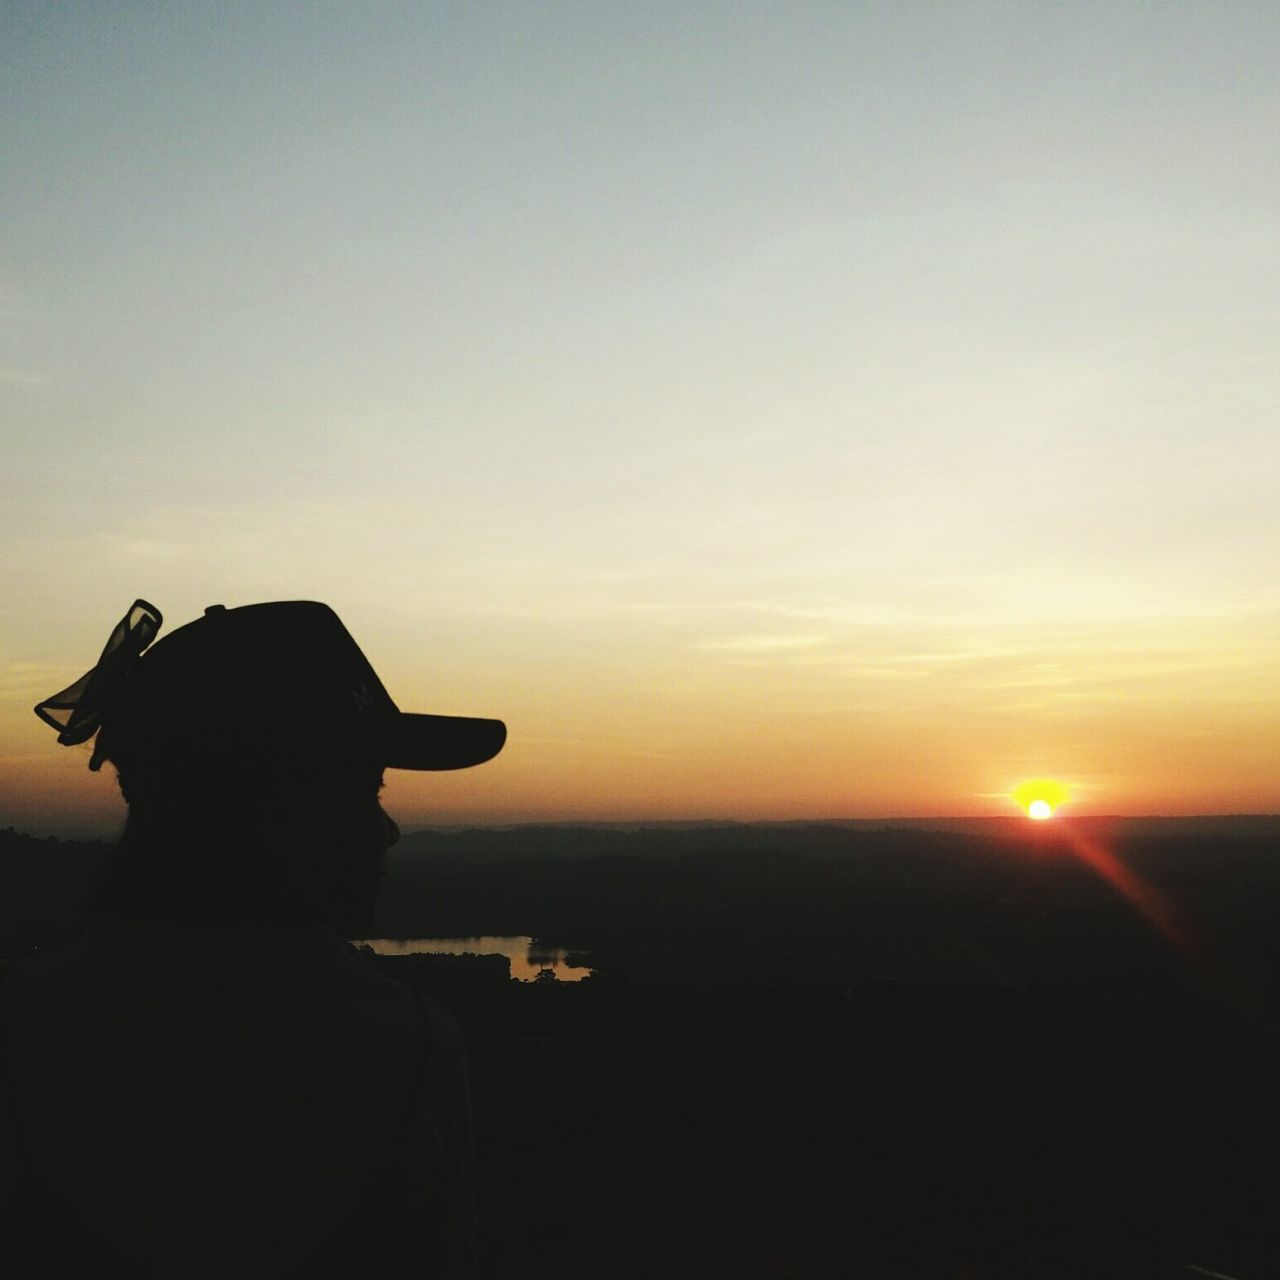 sunset, silhouette, sky, standing, sun, outdoors, nature, one person, real people, clear sky, beauty in nature, day, people